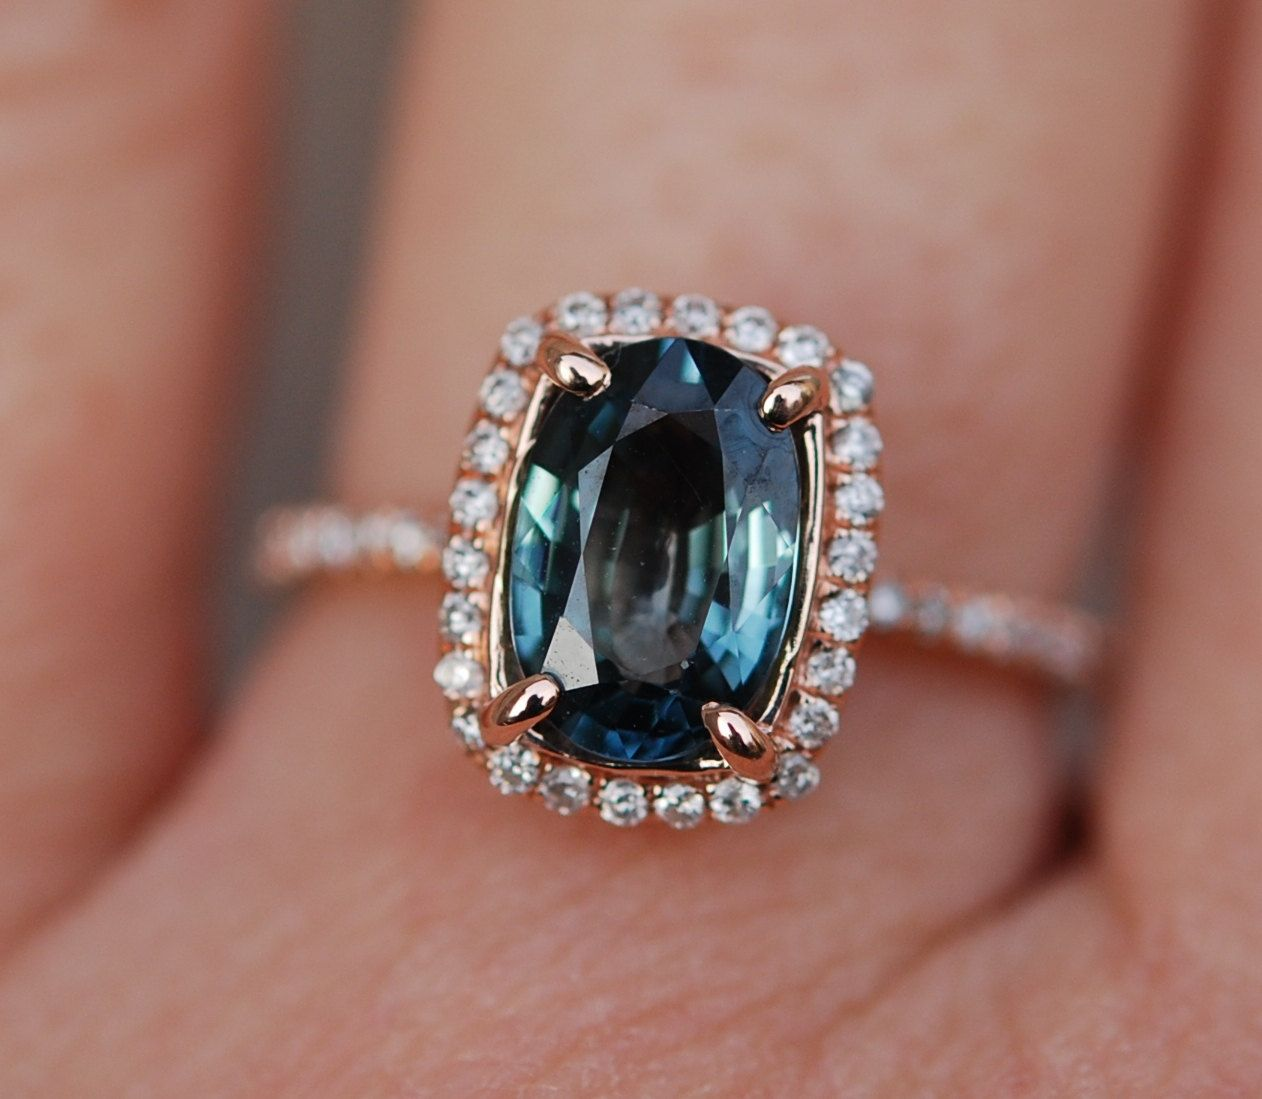 Blue Green Sapphire #engagement Ring Teal #sapphire 17ct Cushion Halo #